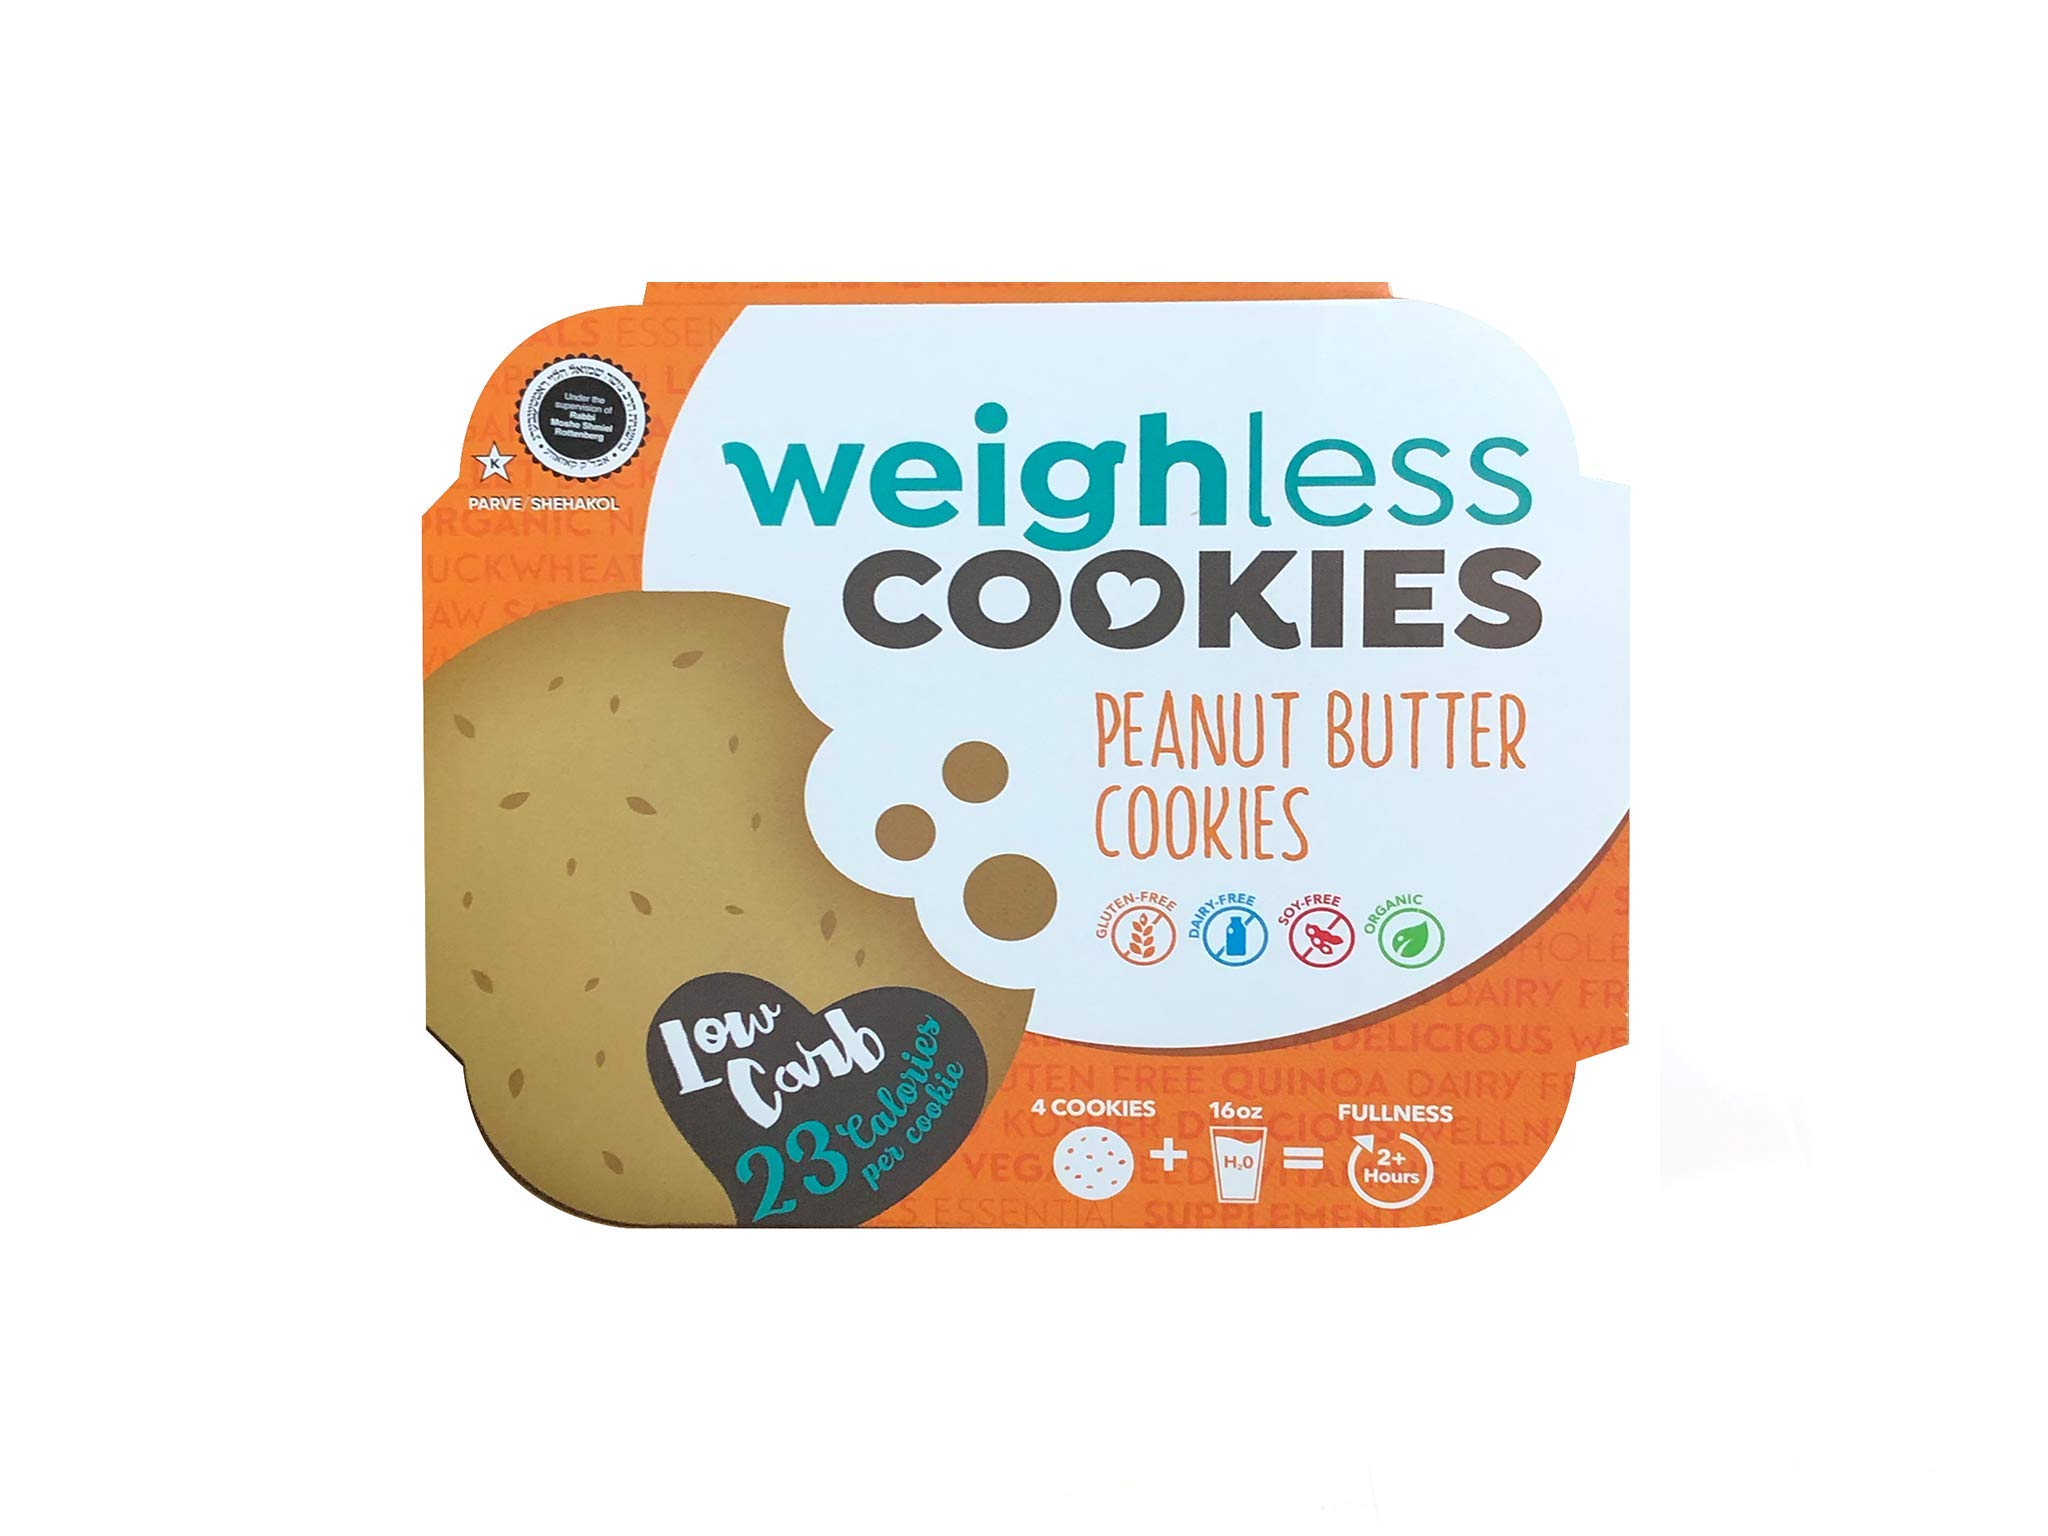 Weighless Cookies Gluten Free Low Carb Peanut Butter - 6 Pack case by Weighless Cookies